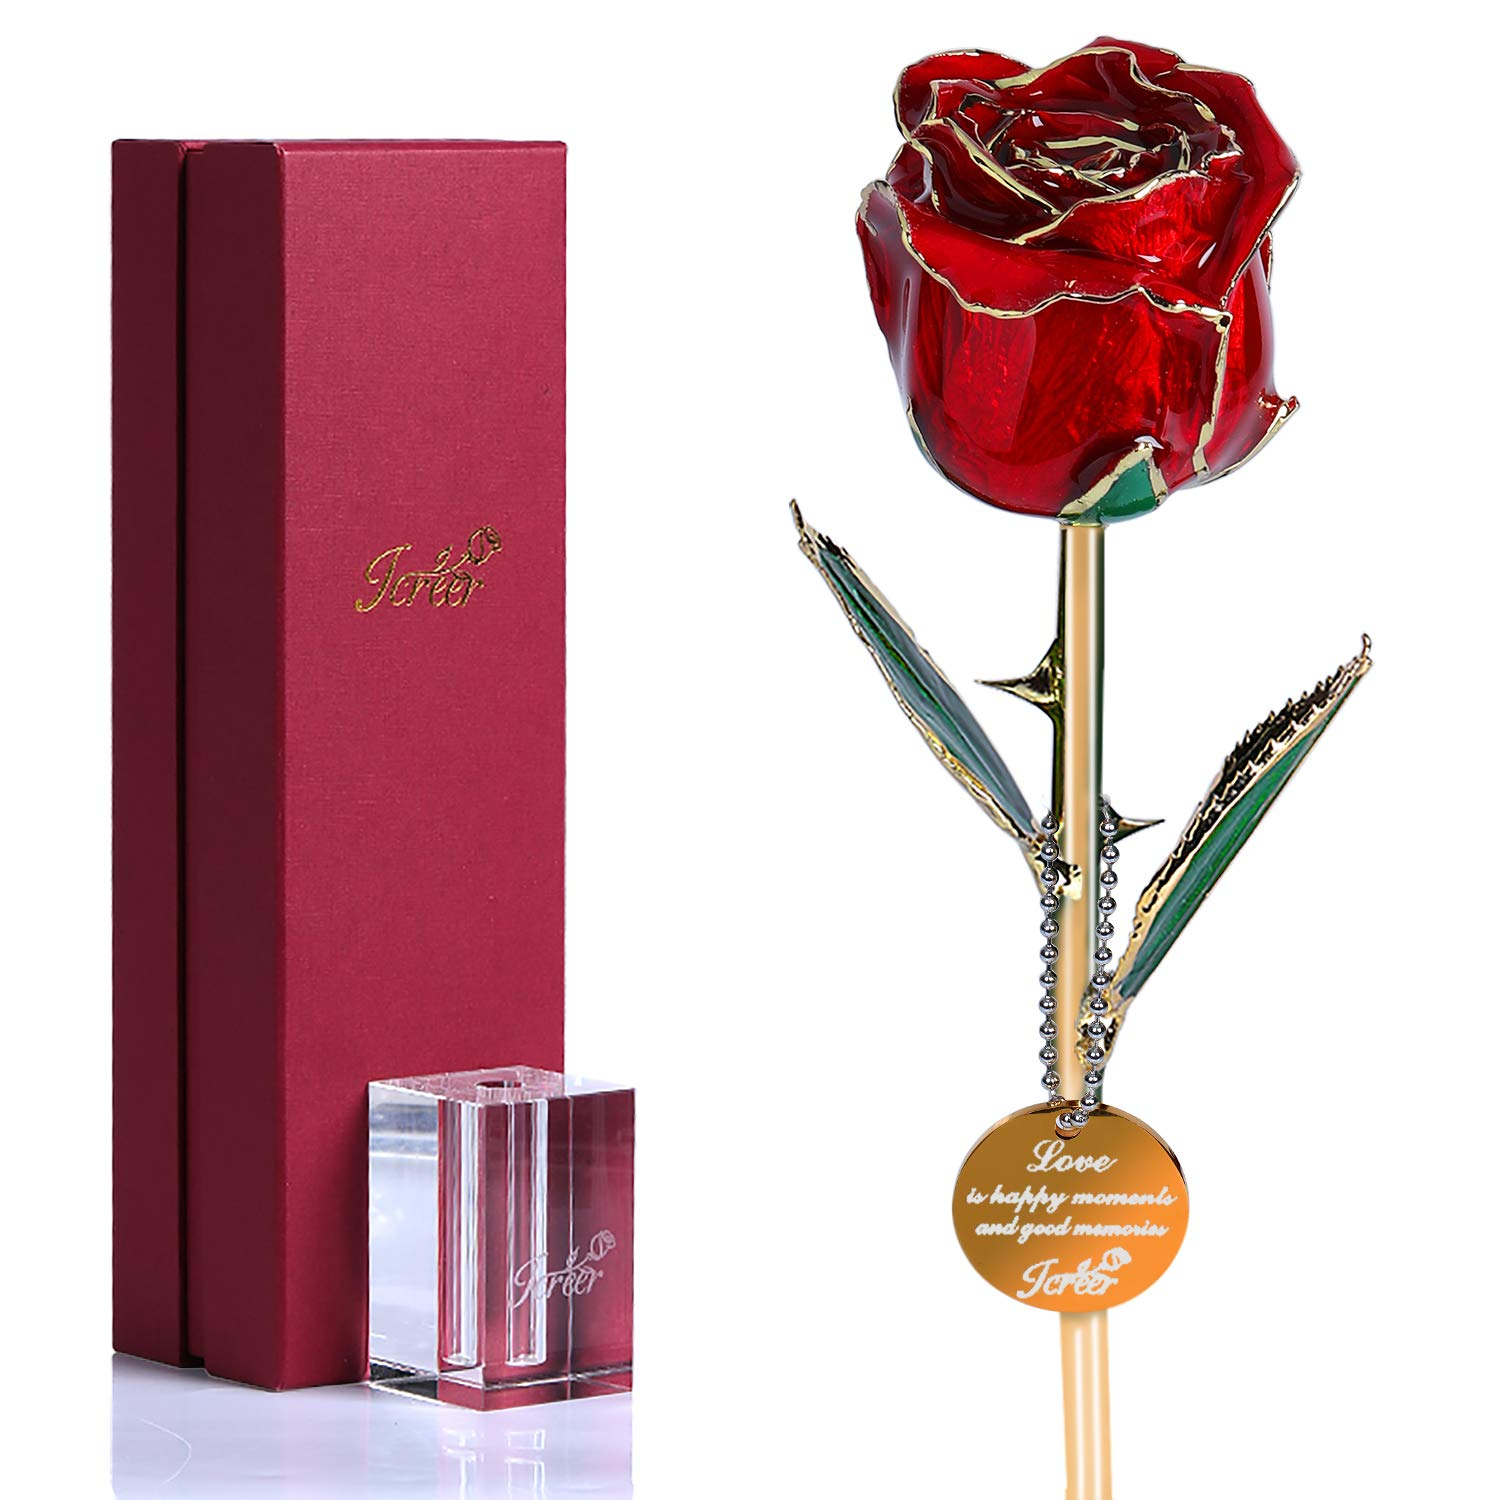 Icreer 24k Gold Dipped Real Rose with Crystal Stand,Present for Mother's Day/Anniversary/Birthday/Wedding and Proposal | Gifts for Her/Mom/Wife/Girlfriend